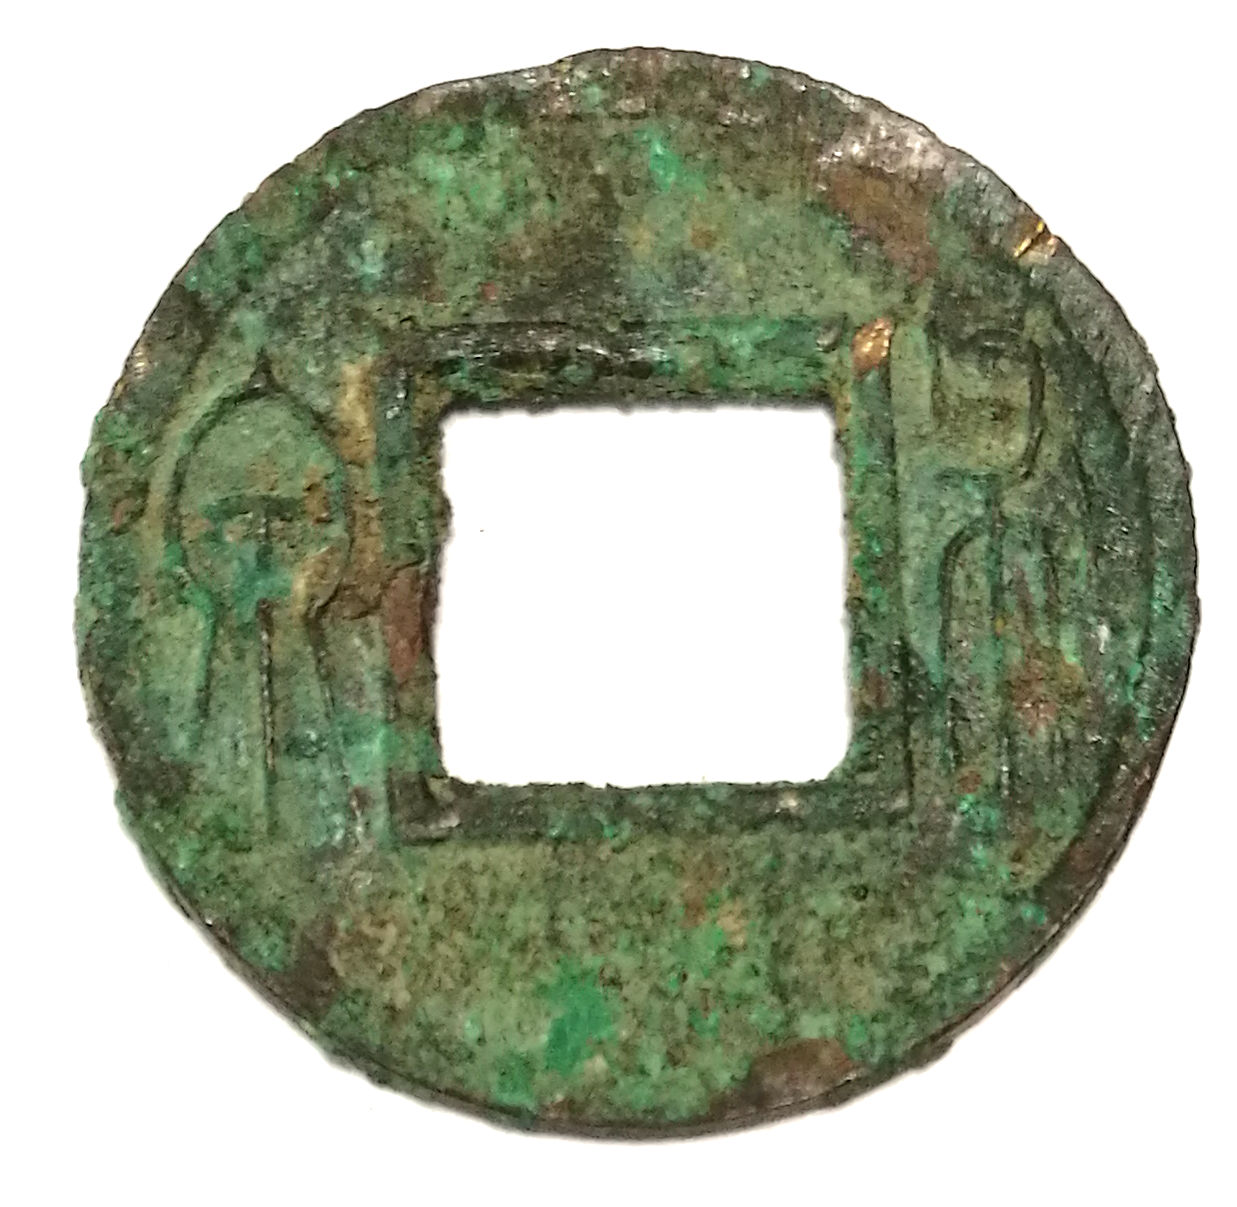 K2025, Bu Quan Coin, China Wang Mang Period, AD 14